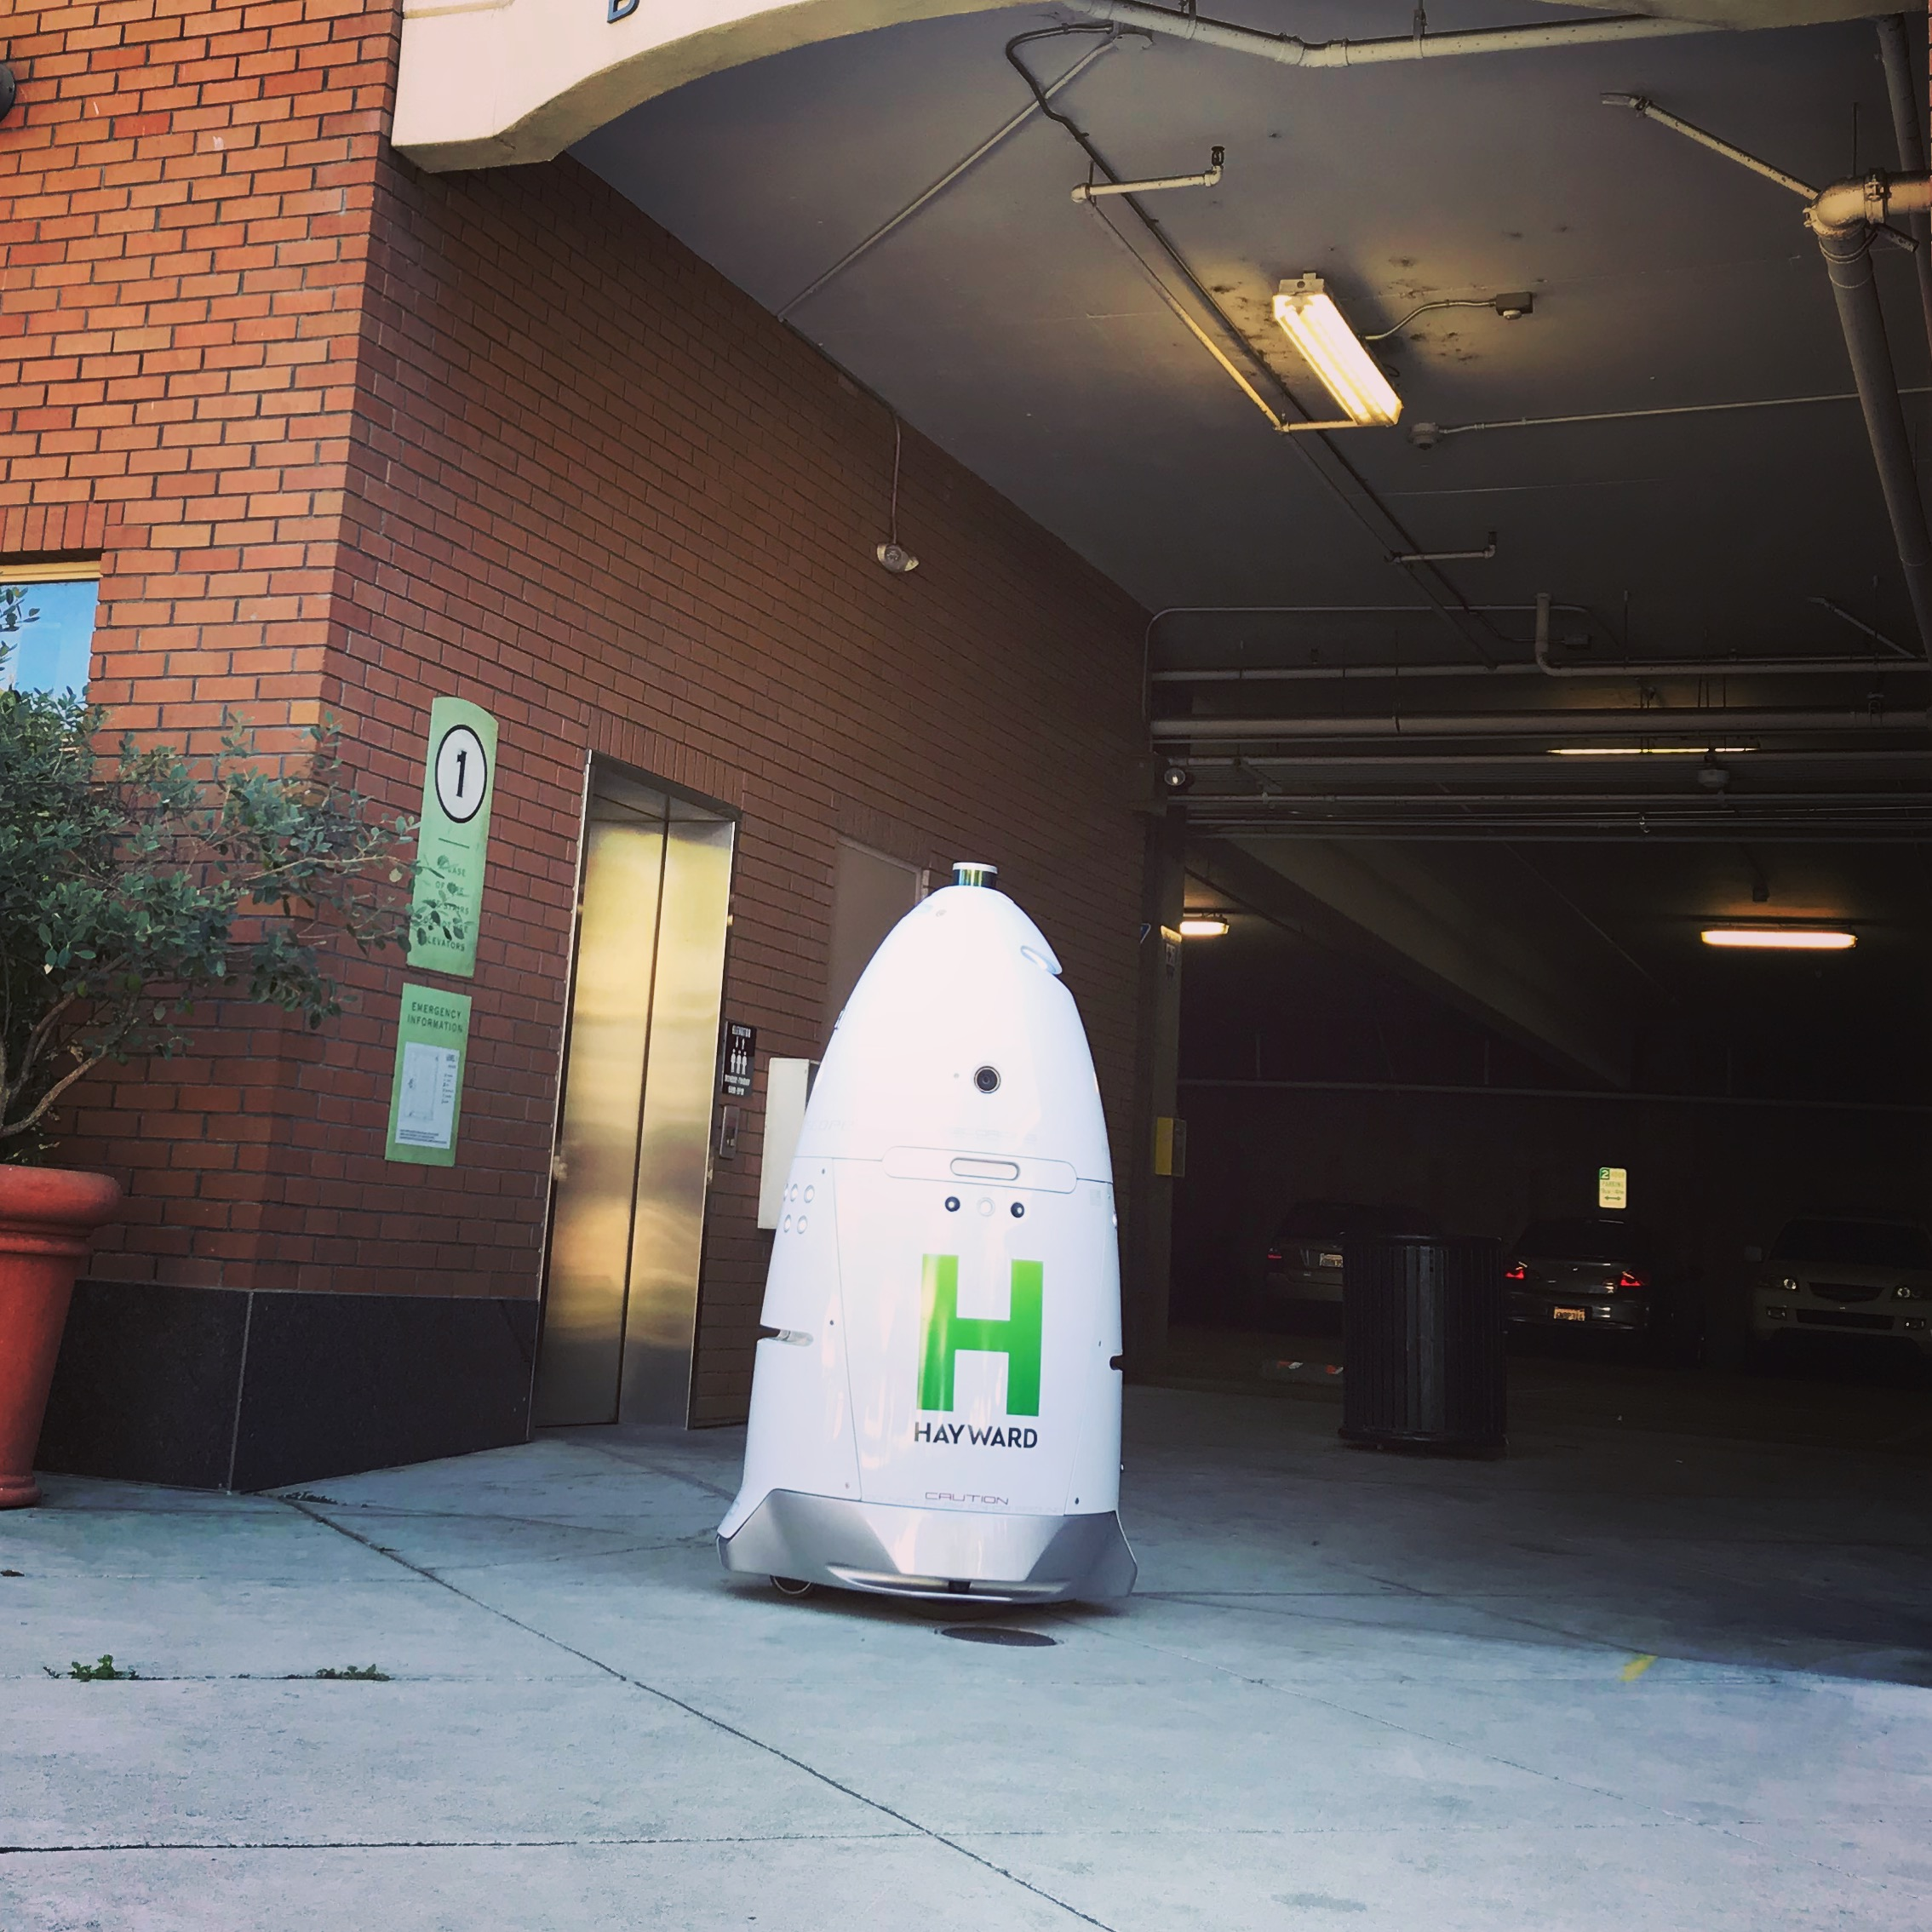 Knightscope K5 Security Robot at City of Hayward